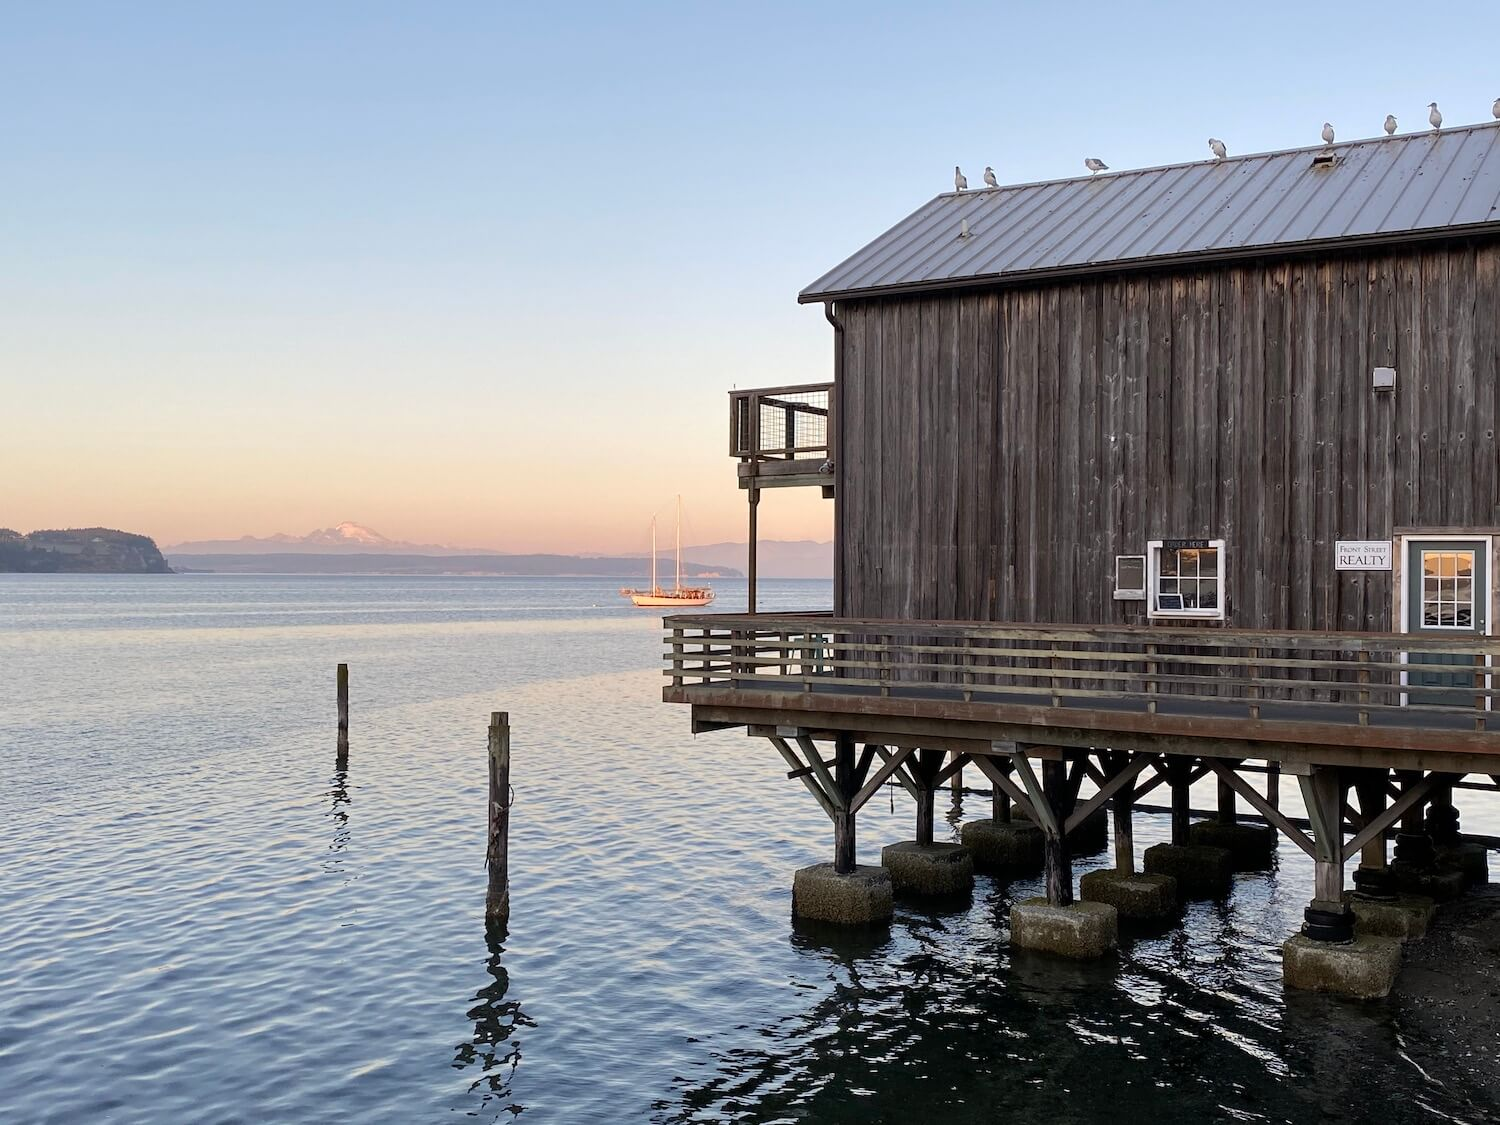 The pier at Coupeville, on Whidbey Island hovers above the Salish Sea as seagulls make their perch on the metal roof high above. The sun is setting and casting a pinkish glow onto Mt. Baker, which is in the background of the photo.